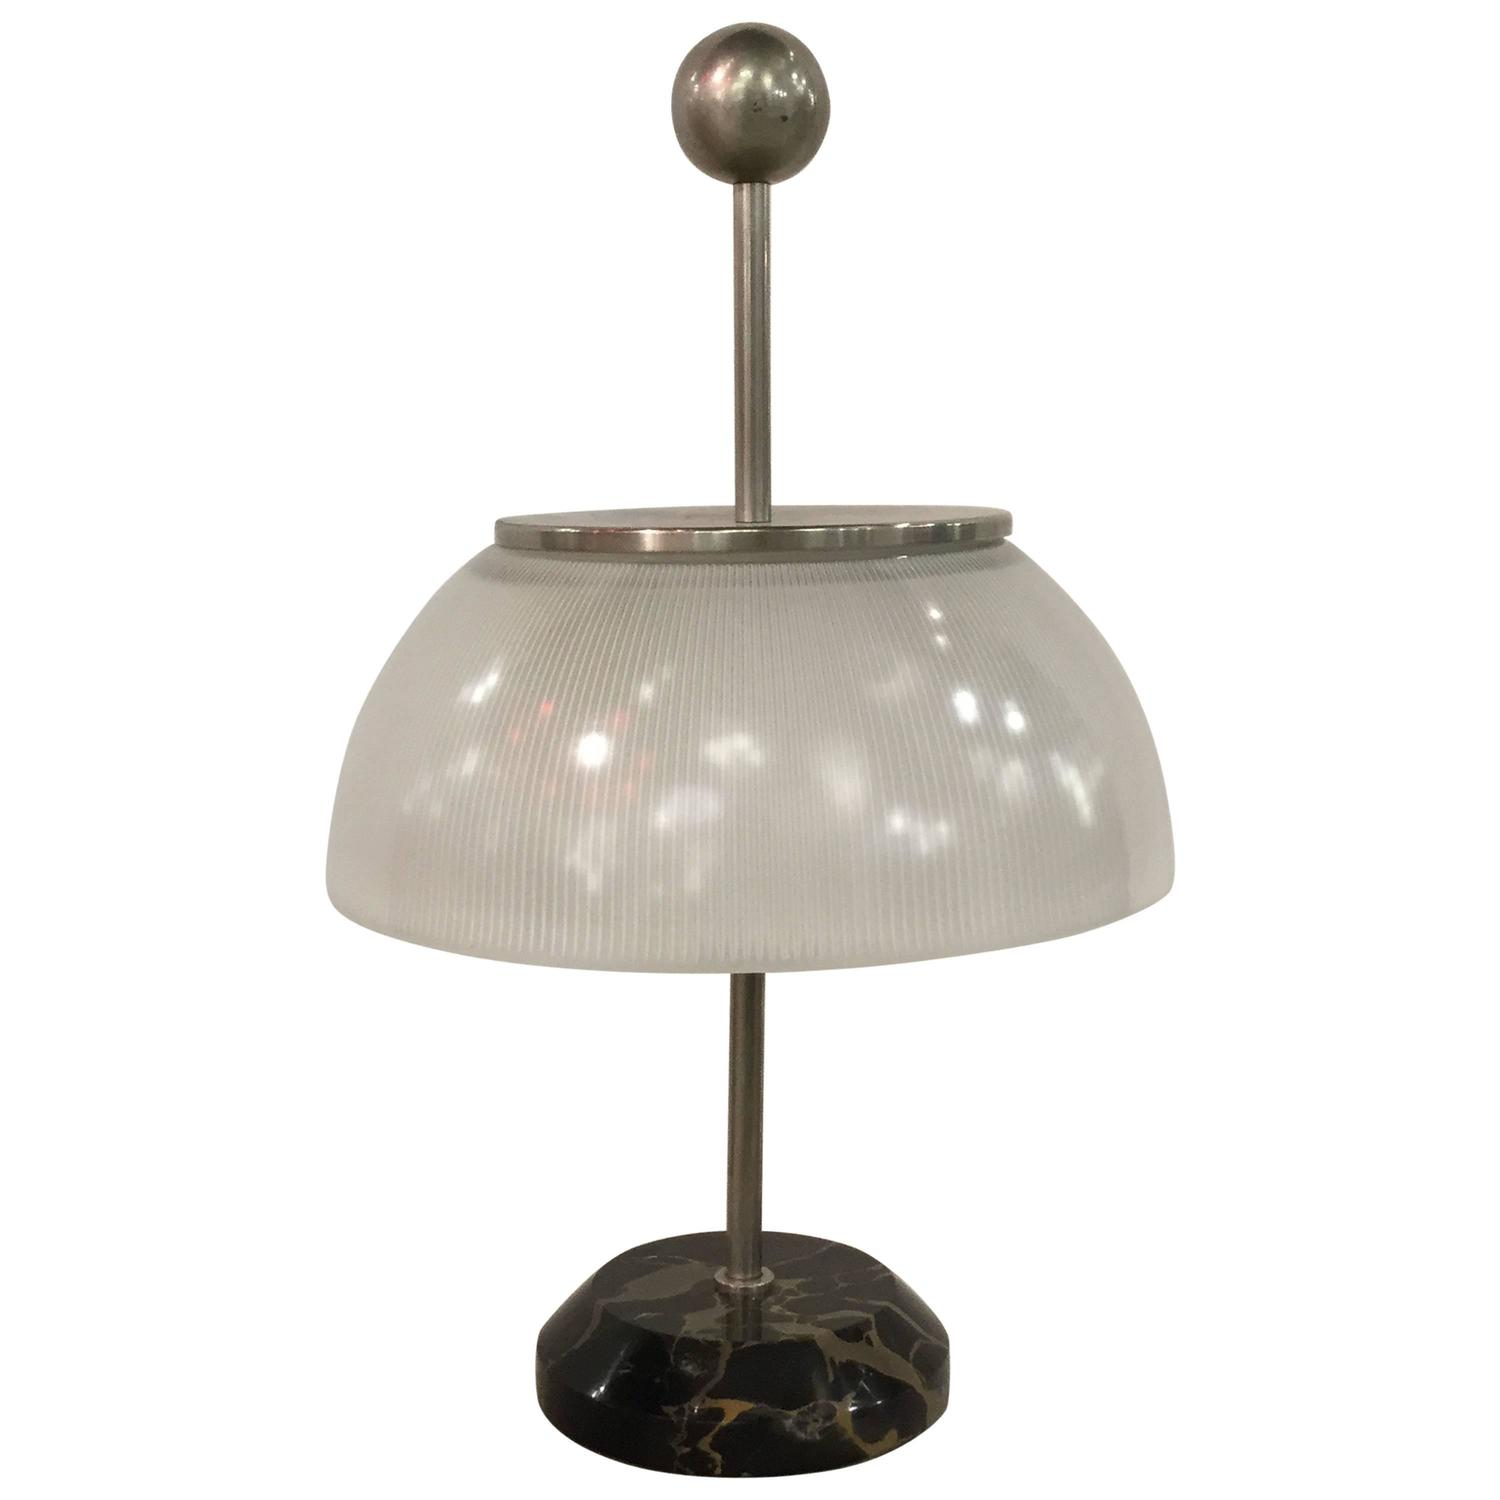 Table Lamp by Sergio Mazza for Artemide For Sale at 1stdibs